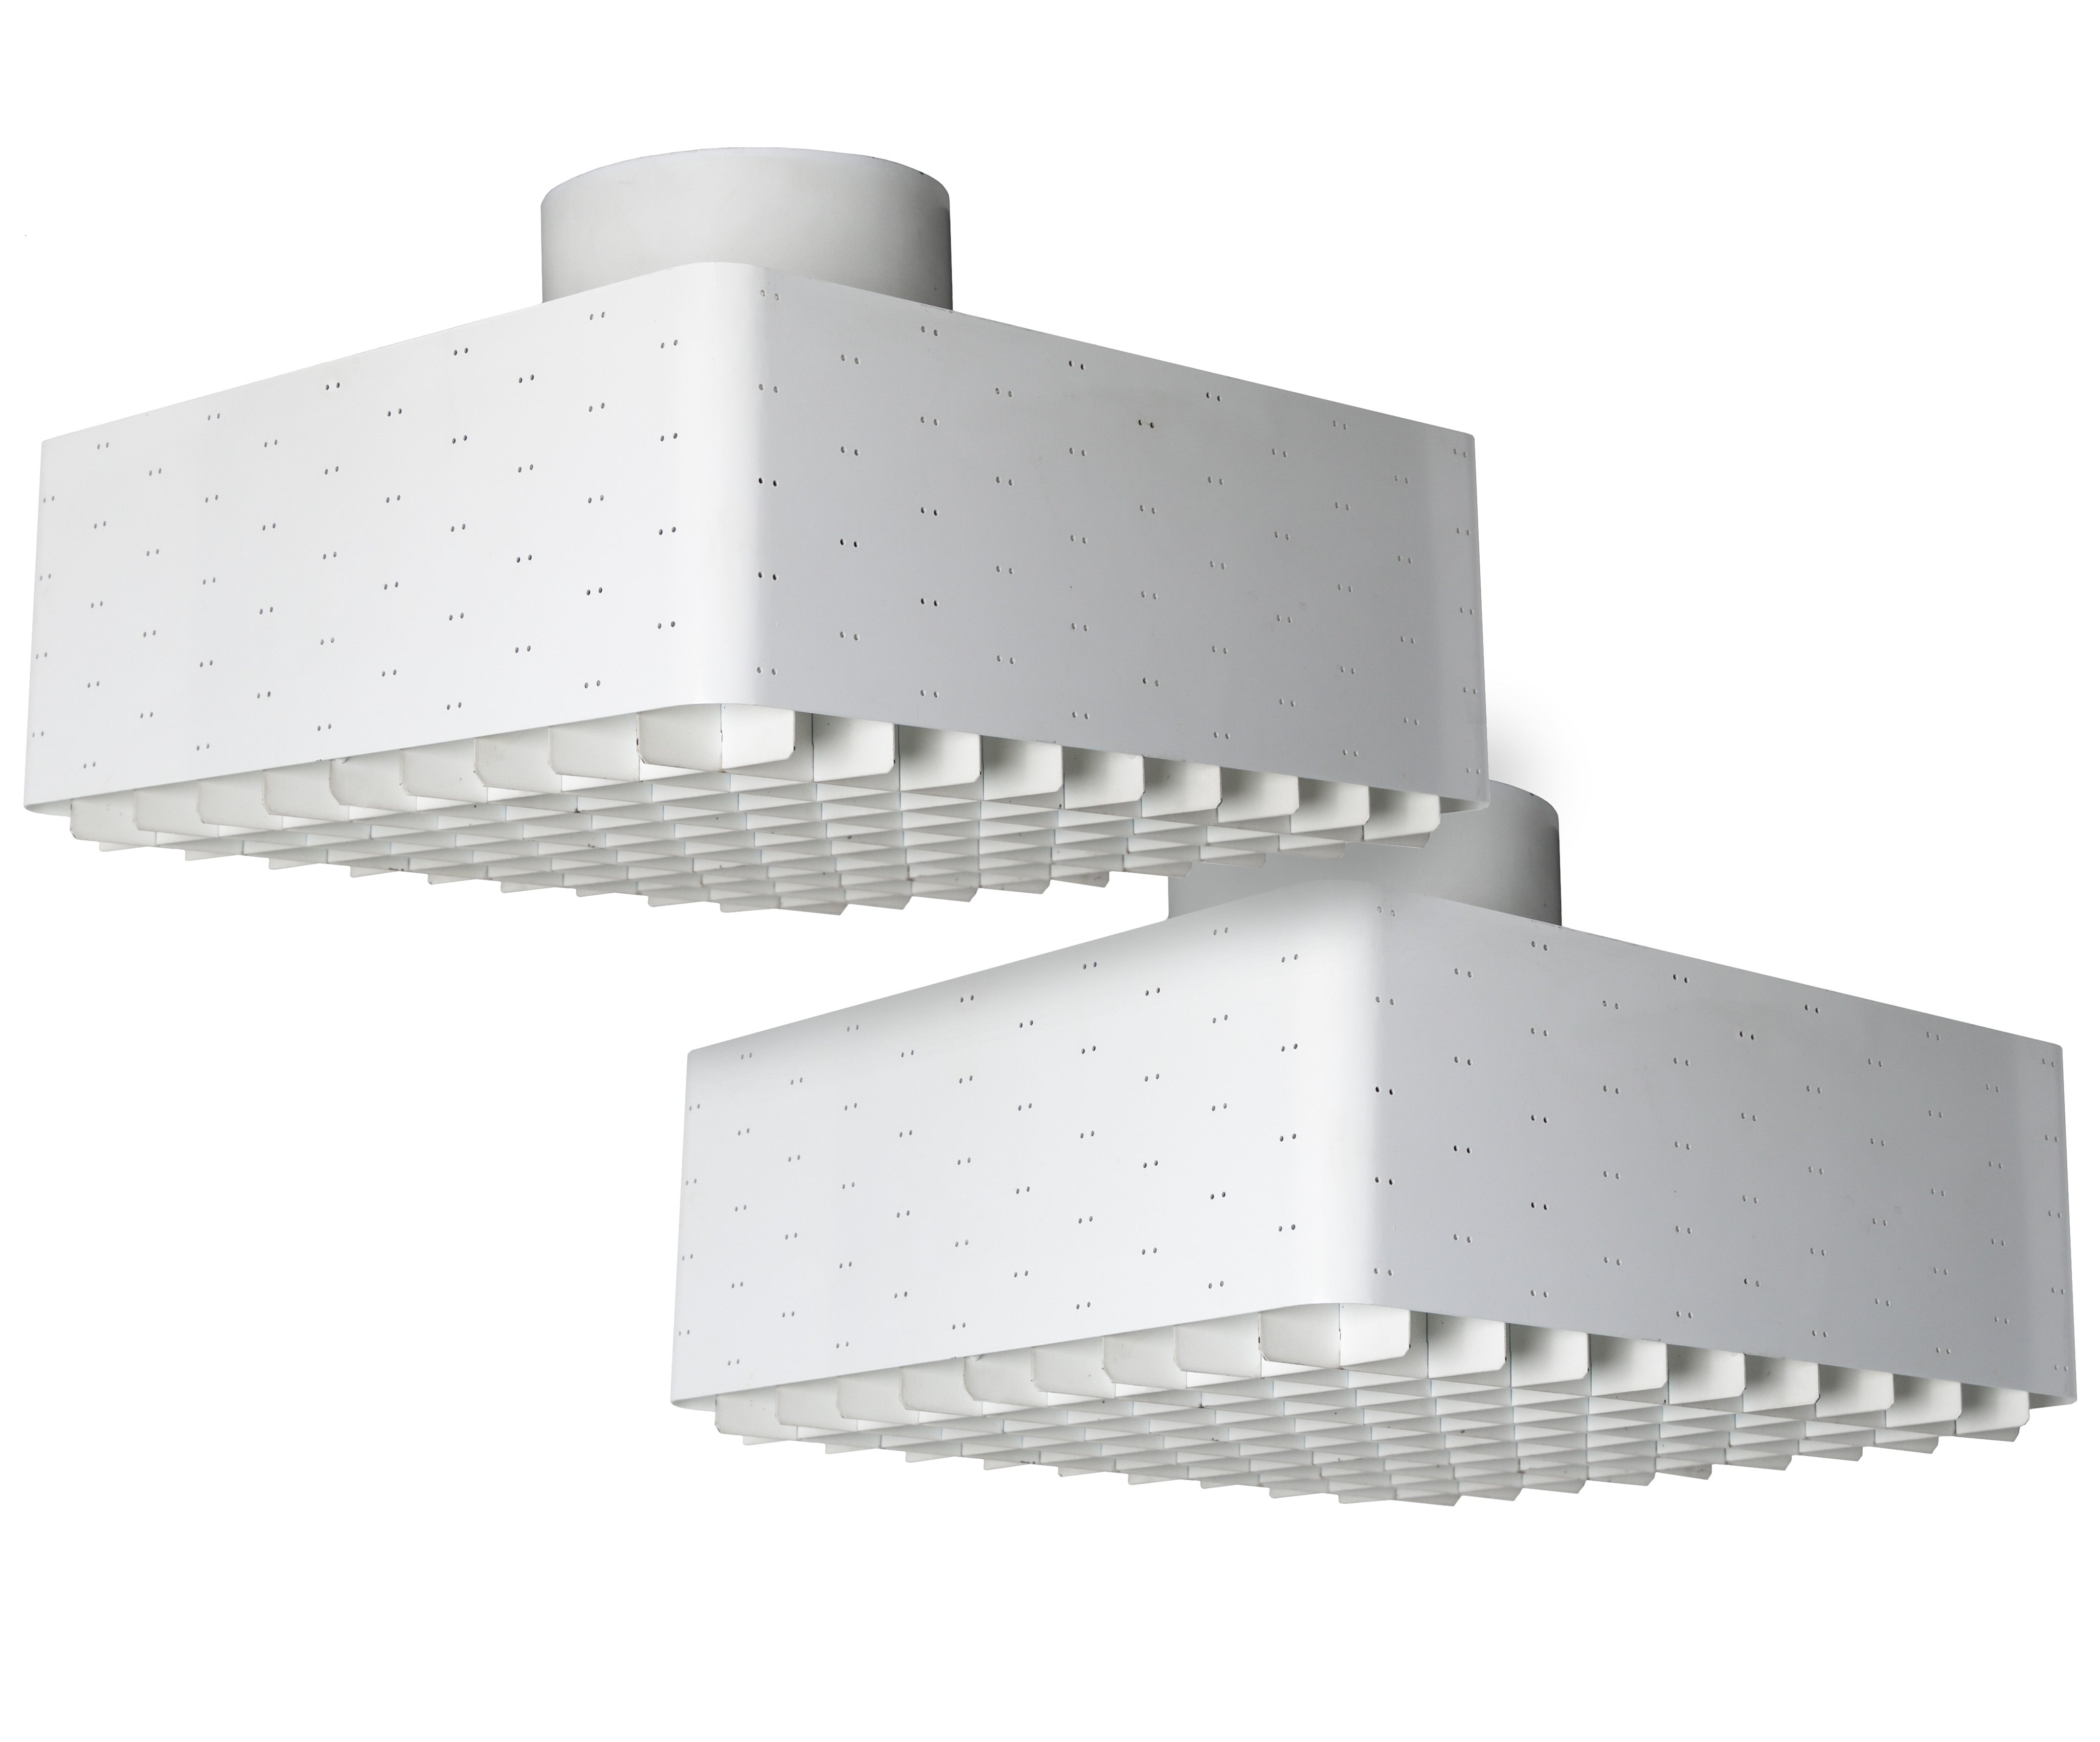 Pair of Paavo Tynell Ceiling Lamps, Model 9068 - The Exchange Int